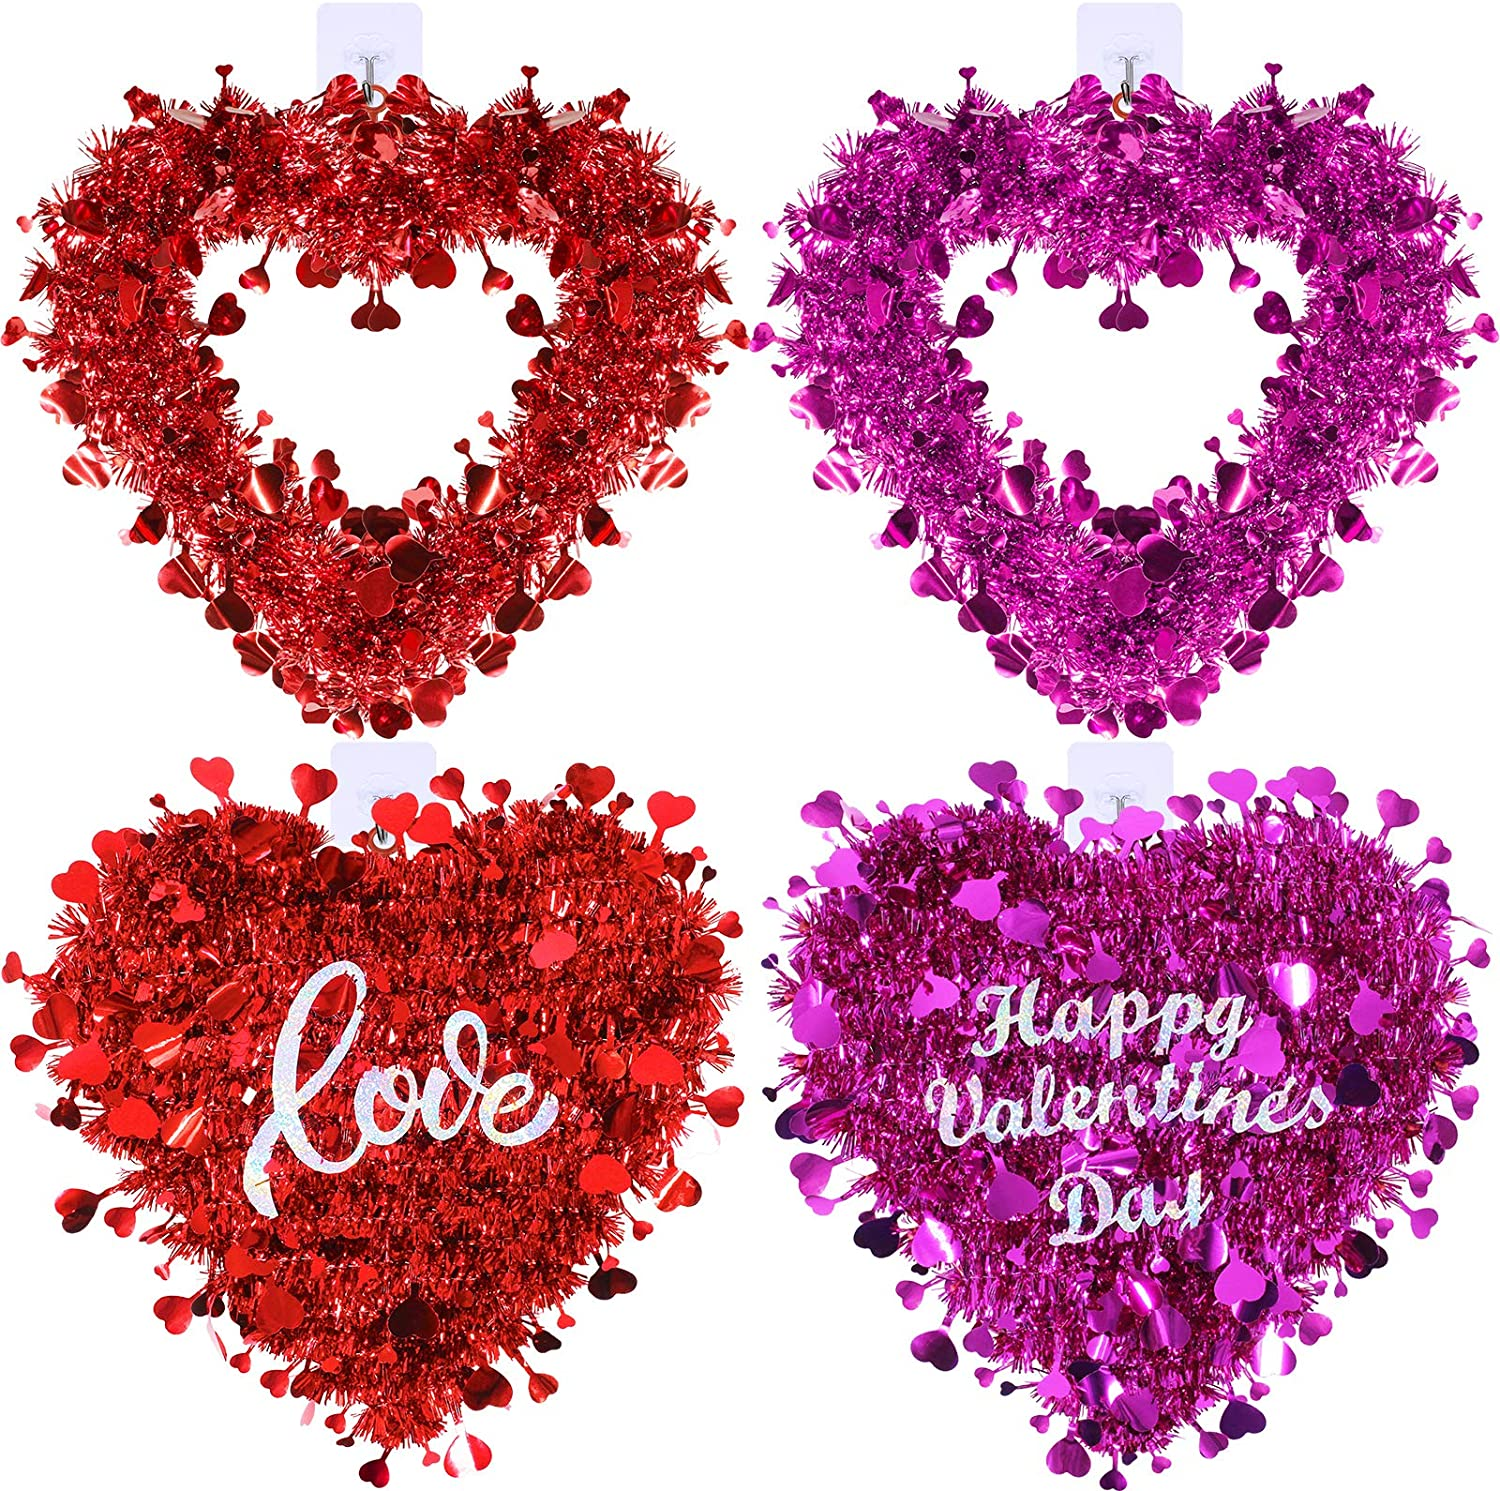 4 Pack Valentine Heart Wreaths Red Purple Tinsel Heart Shaped Wreaths with Foil Hearts Love Hanging Valentine's Day Wreaths Decorations for Wedding Birthday Party Front Door Wall Window Mantel Décor